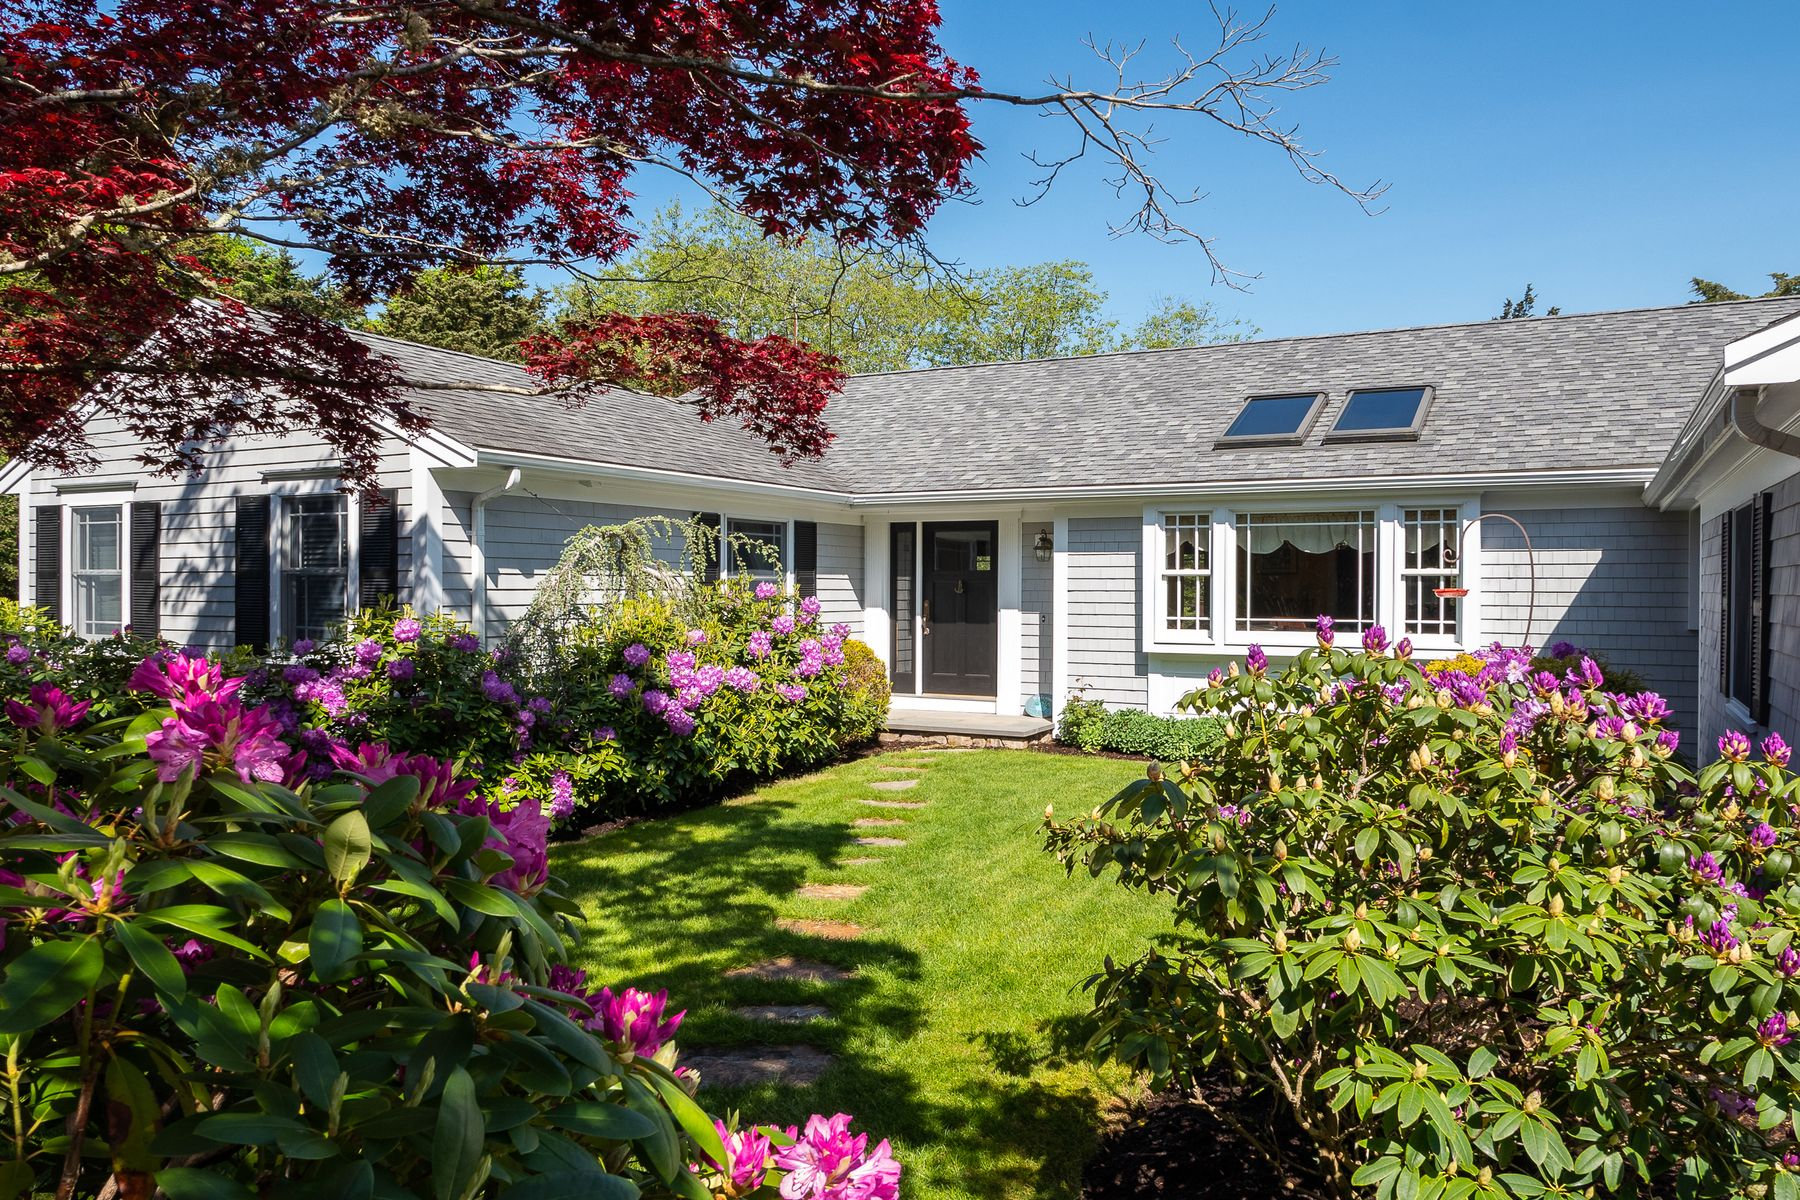 Single Family Homes for Active at 23 Deely Lane, West Falmouth, MA 23 Deely Lane West Falmouth, Massachusetts 02574 United States